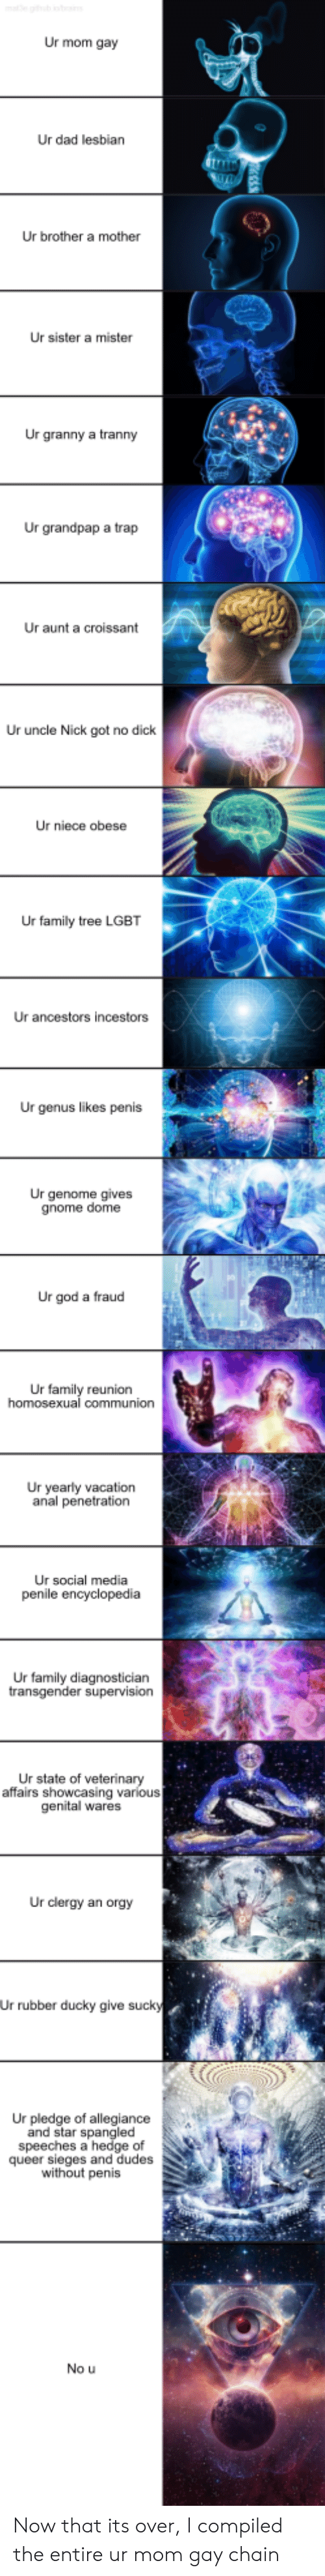 genome: Ur mom gay  Ur dad lesbian  Ur brother a mother  Ur sister a mister  Ur granny a tranny  Ur grandpap a trap  Ur aunt a croissant  Ur uncle Nick got no dick  Ur niece obese  Ur family tree LGBT  Ur ancestors incestors  Ur genus likes penis  Ur genome gives  gnome dome  Ur god a fraud  Ur family reunion  Ur yearly vacation  anal penetration  Ur social media  Ur family diagnosticiarn  Ur state of veterinary  affairs showcasing various  genital wares  Ur clergy an orgy  Ur rubber ducky give suck  Ur pledge of allegiance  and star spangle  speeches a hedge of  queer sieges and dudes  without penis  No u Now that its over, I compiled the entire ur mom gay chain